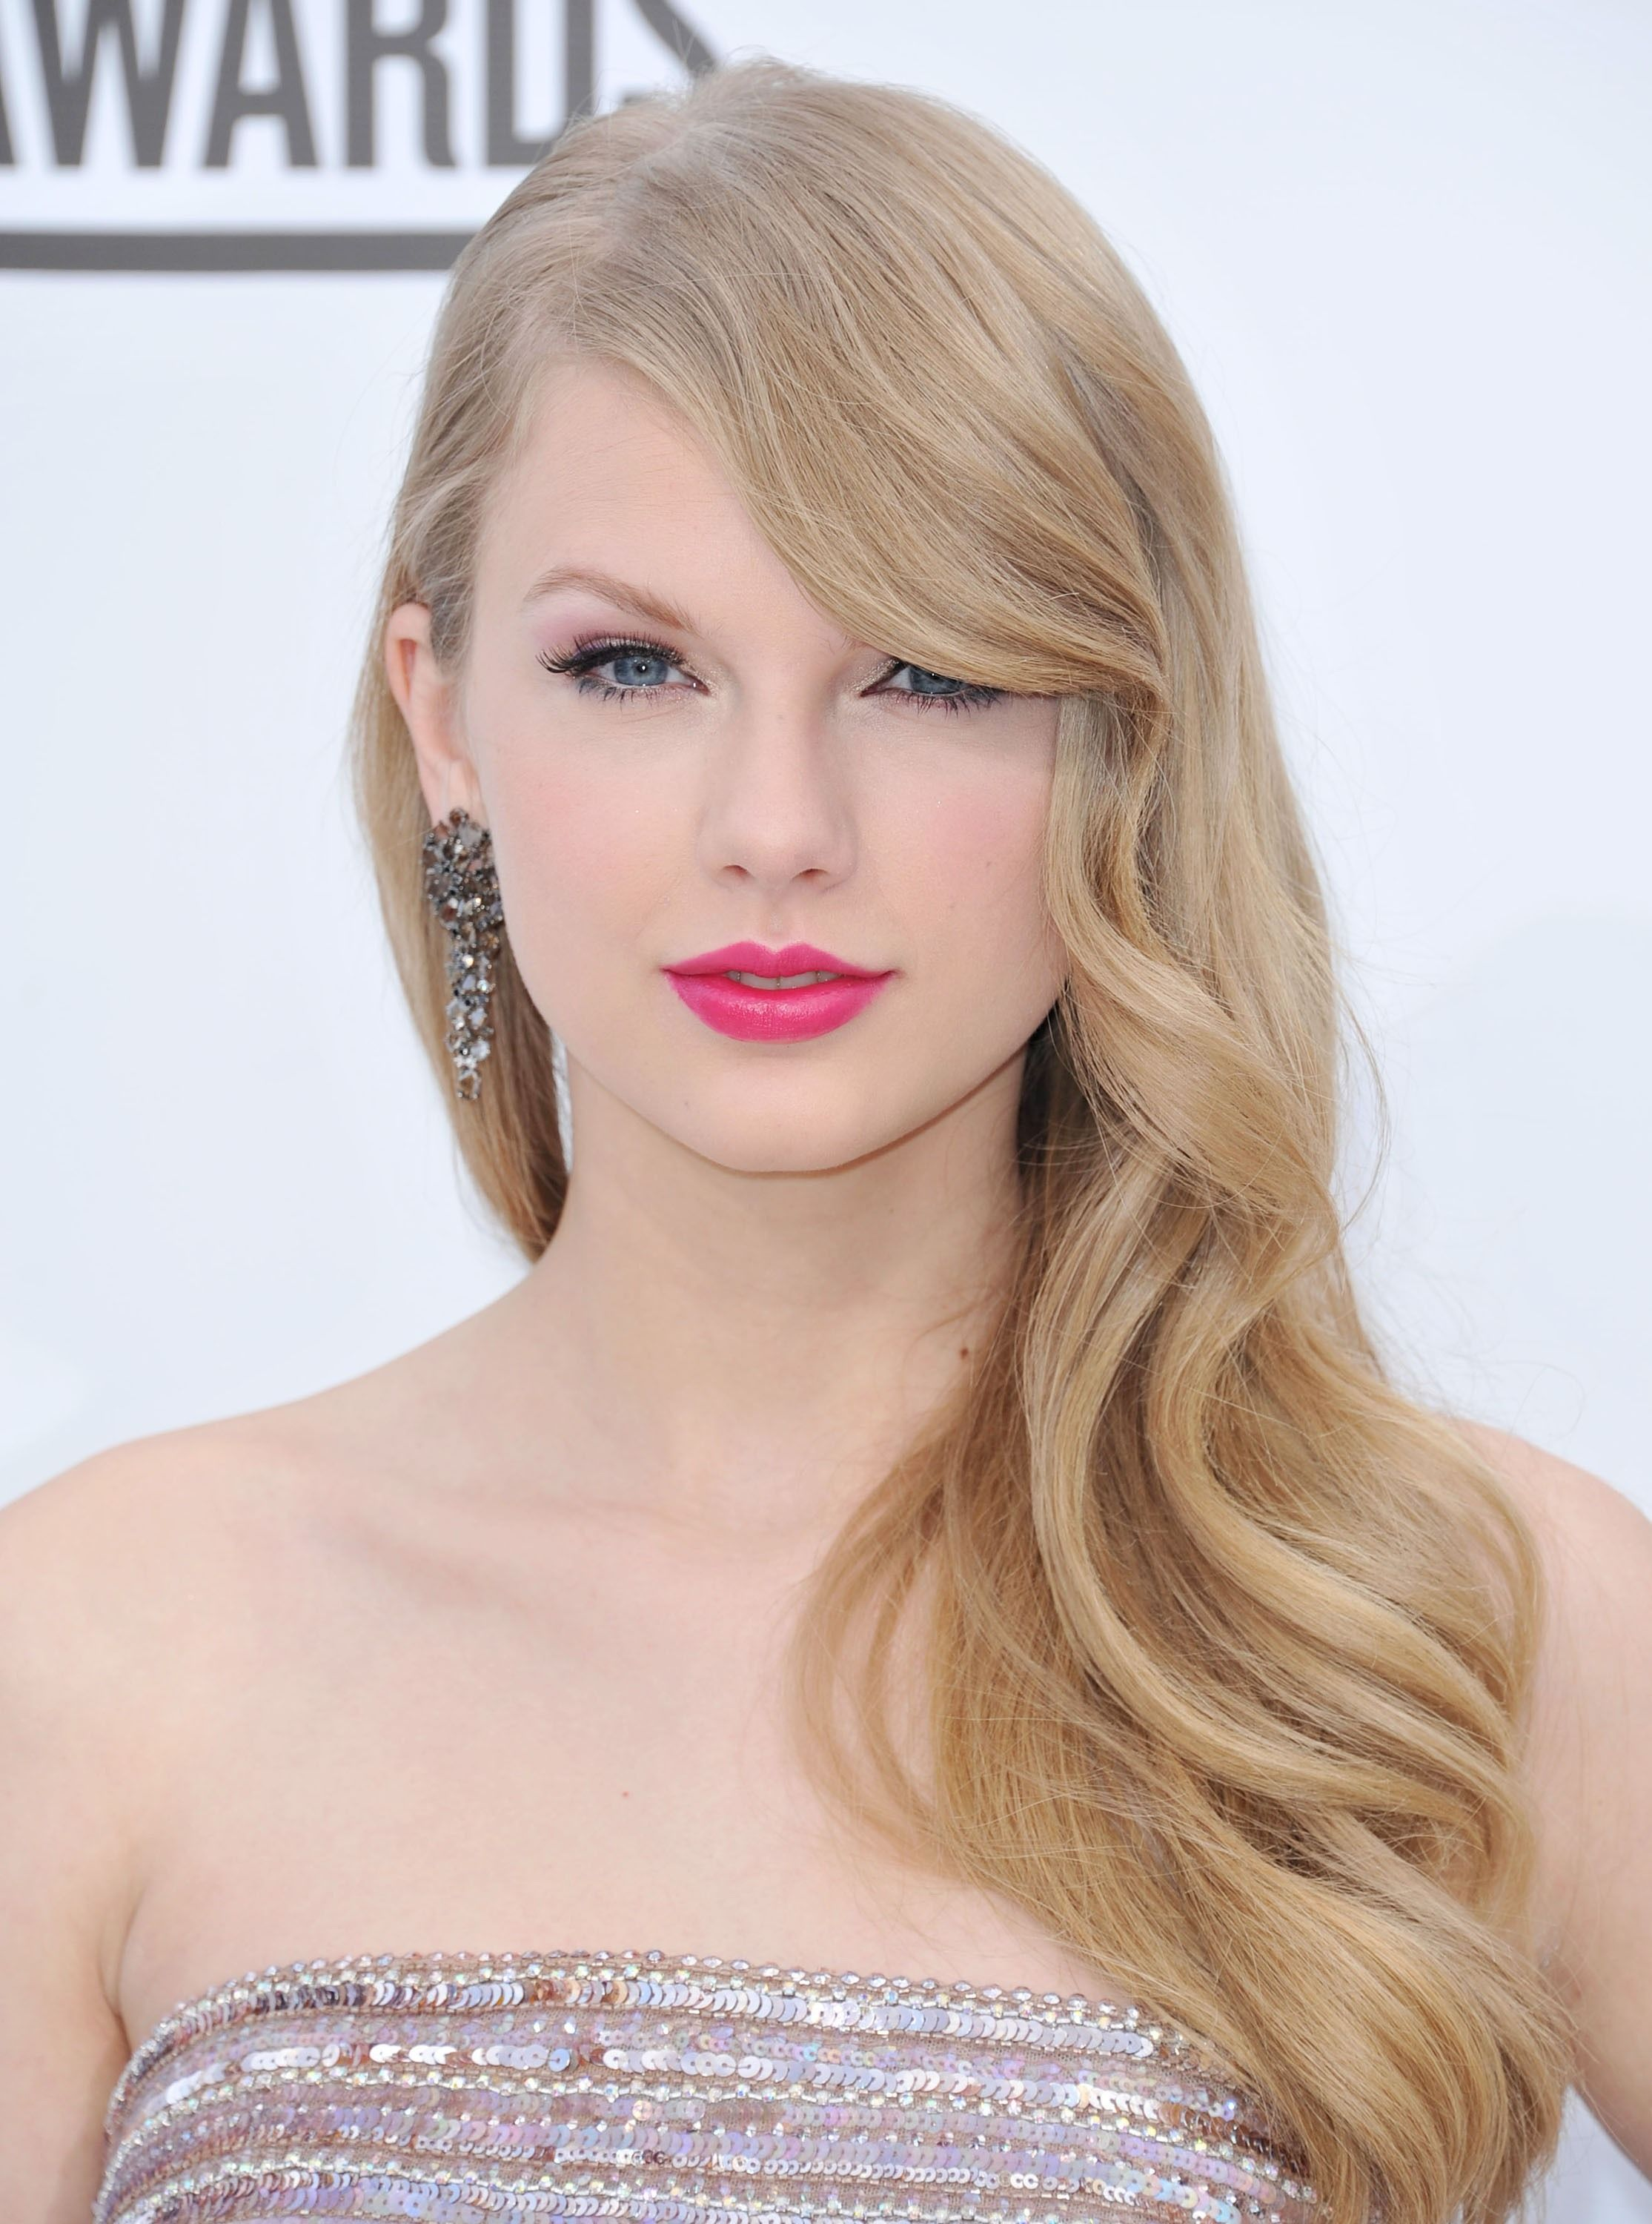 Taylor Swift S Pink Hair Interesting To Wear For A Day Or A Fun Night Out Pink Hair Taylor Swift Pink Hair Dip Dye Hair